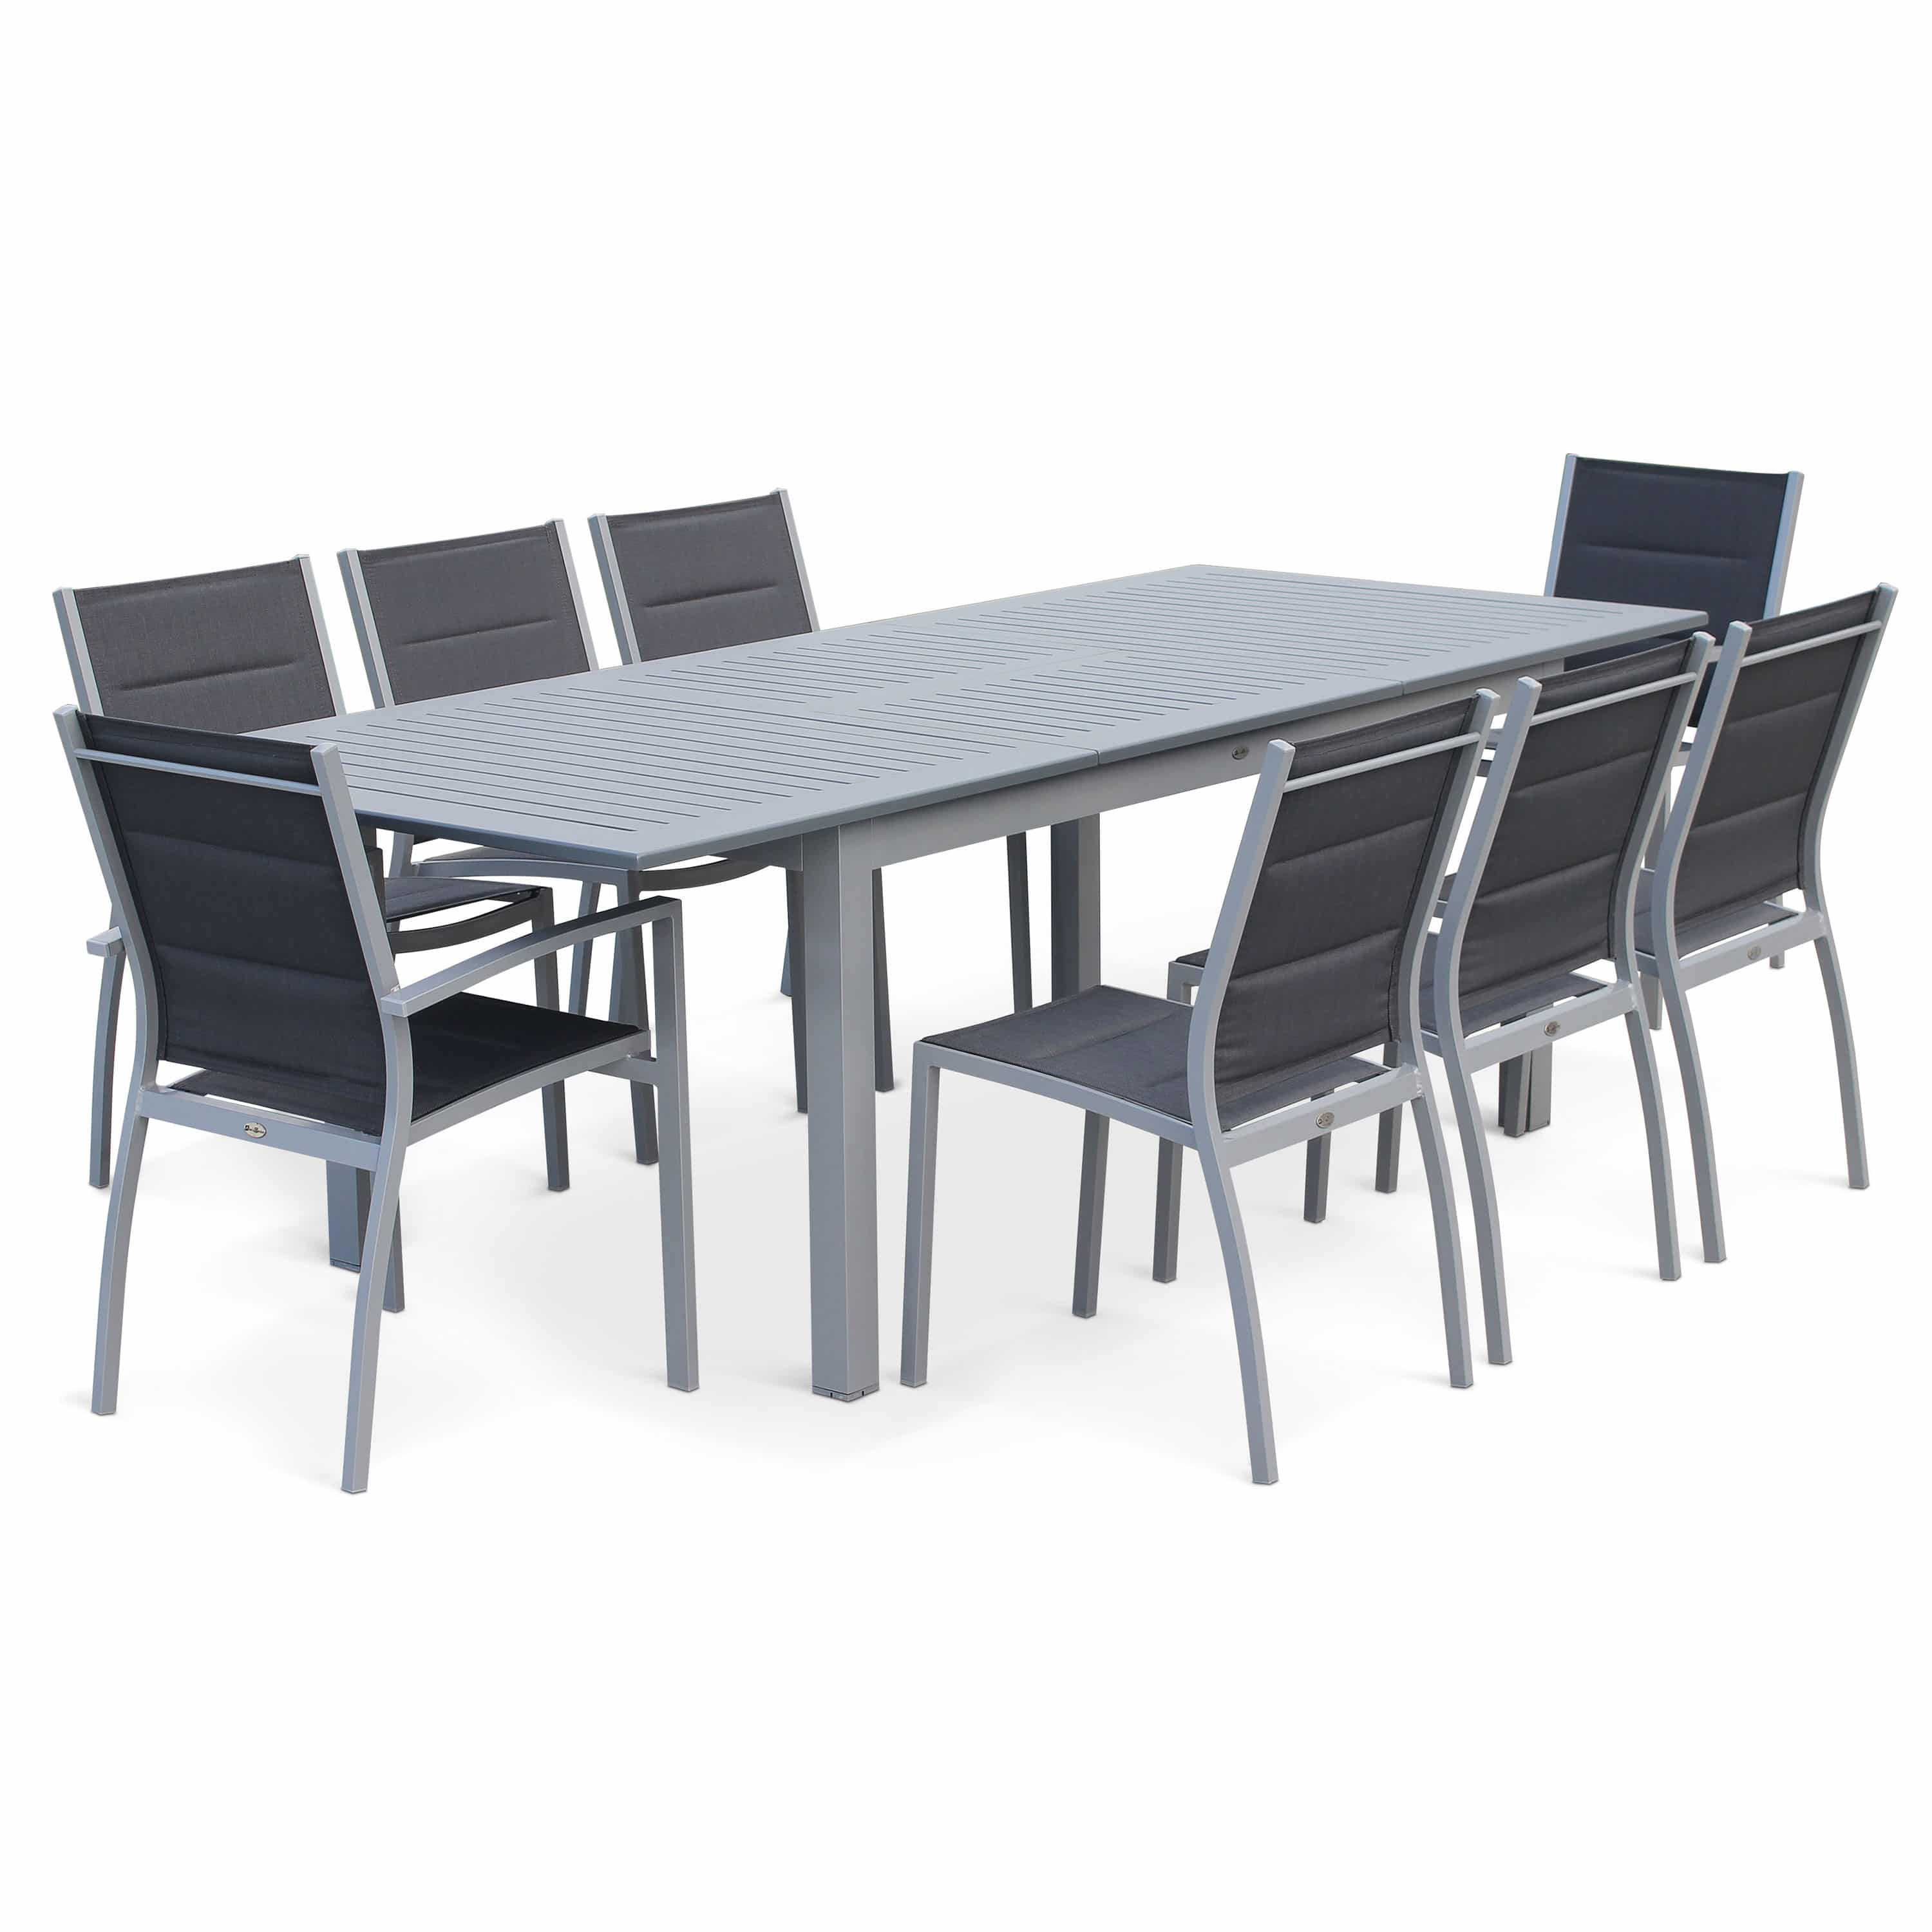 Outdoor Table And Chair Set Chicago 8 10 Seater 175 245cm Extending Aluminium Dining Set Exists In 4 Colours